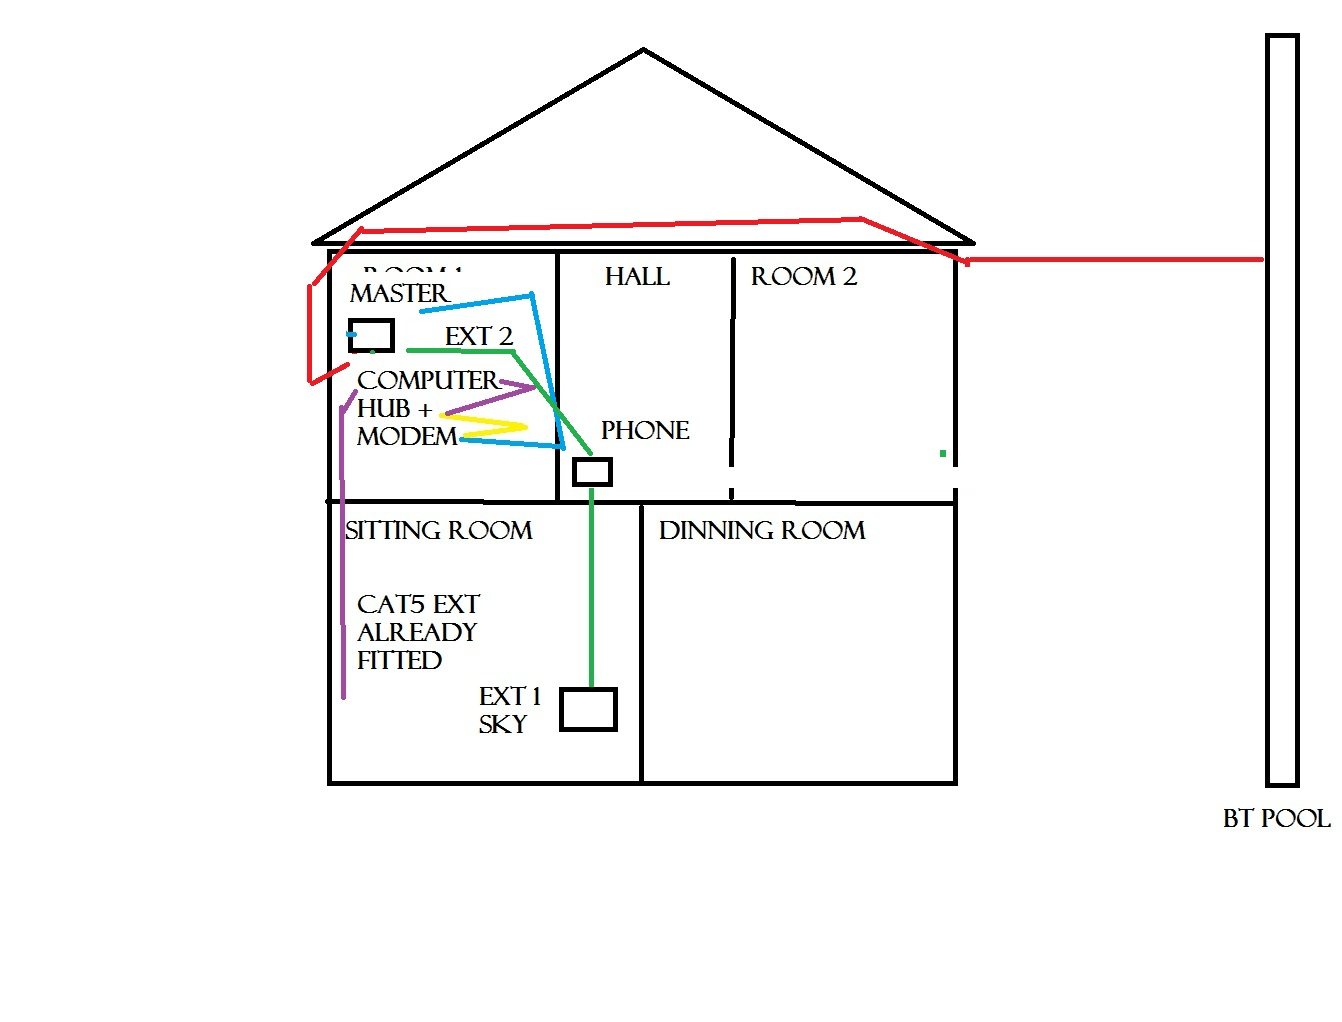 Bt Infinity 2 Wiring Diagram Library Inside Master Socket Need Help On How The Enginer Will Communitybt